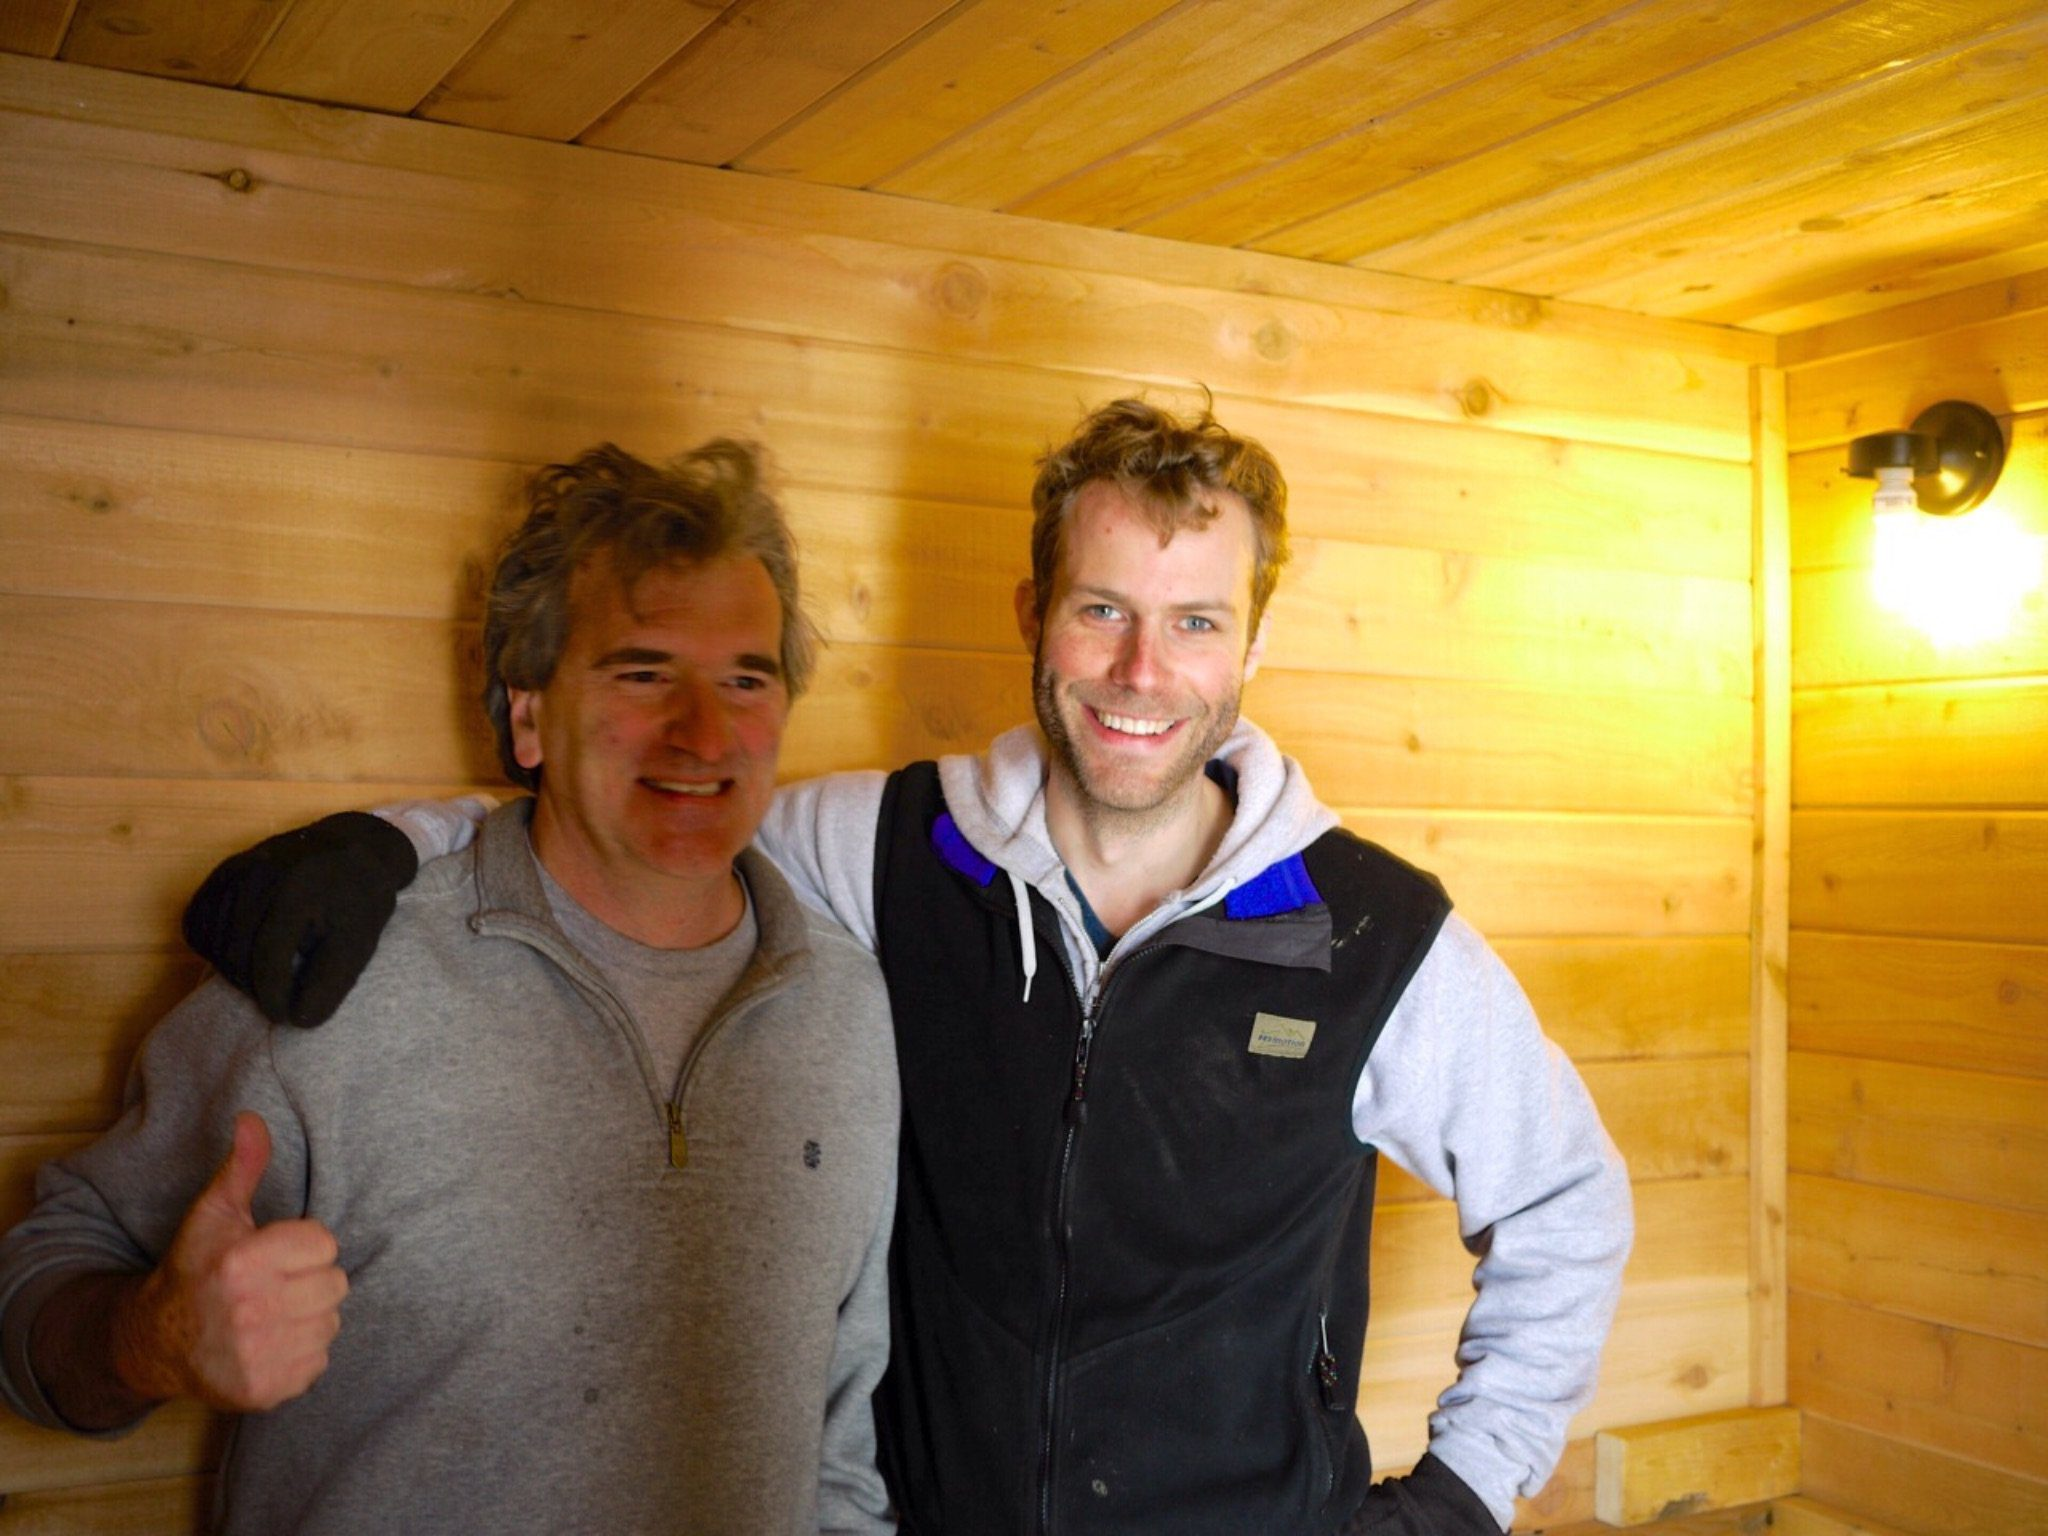 Saunatimes founder Glenn (left) and 612 Sauna Society founder JP (right) discussing tongue and groove cedar whilst in hot room of mobile sauna